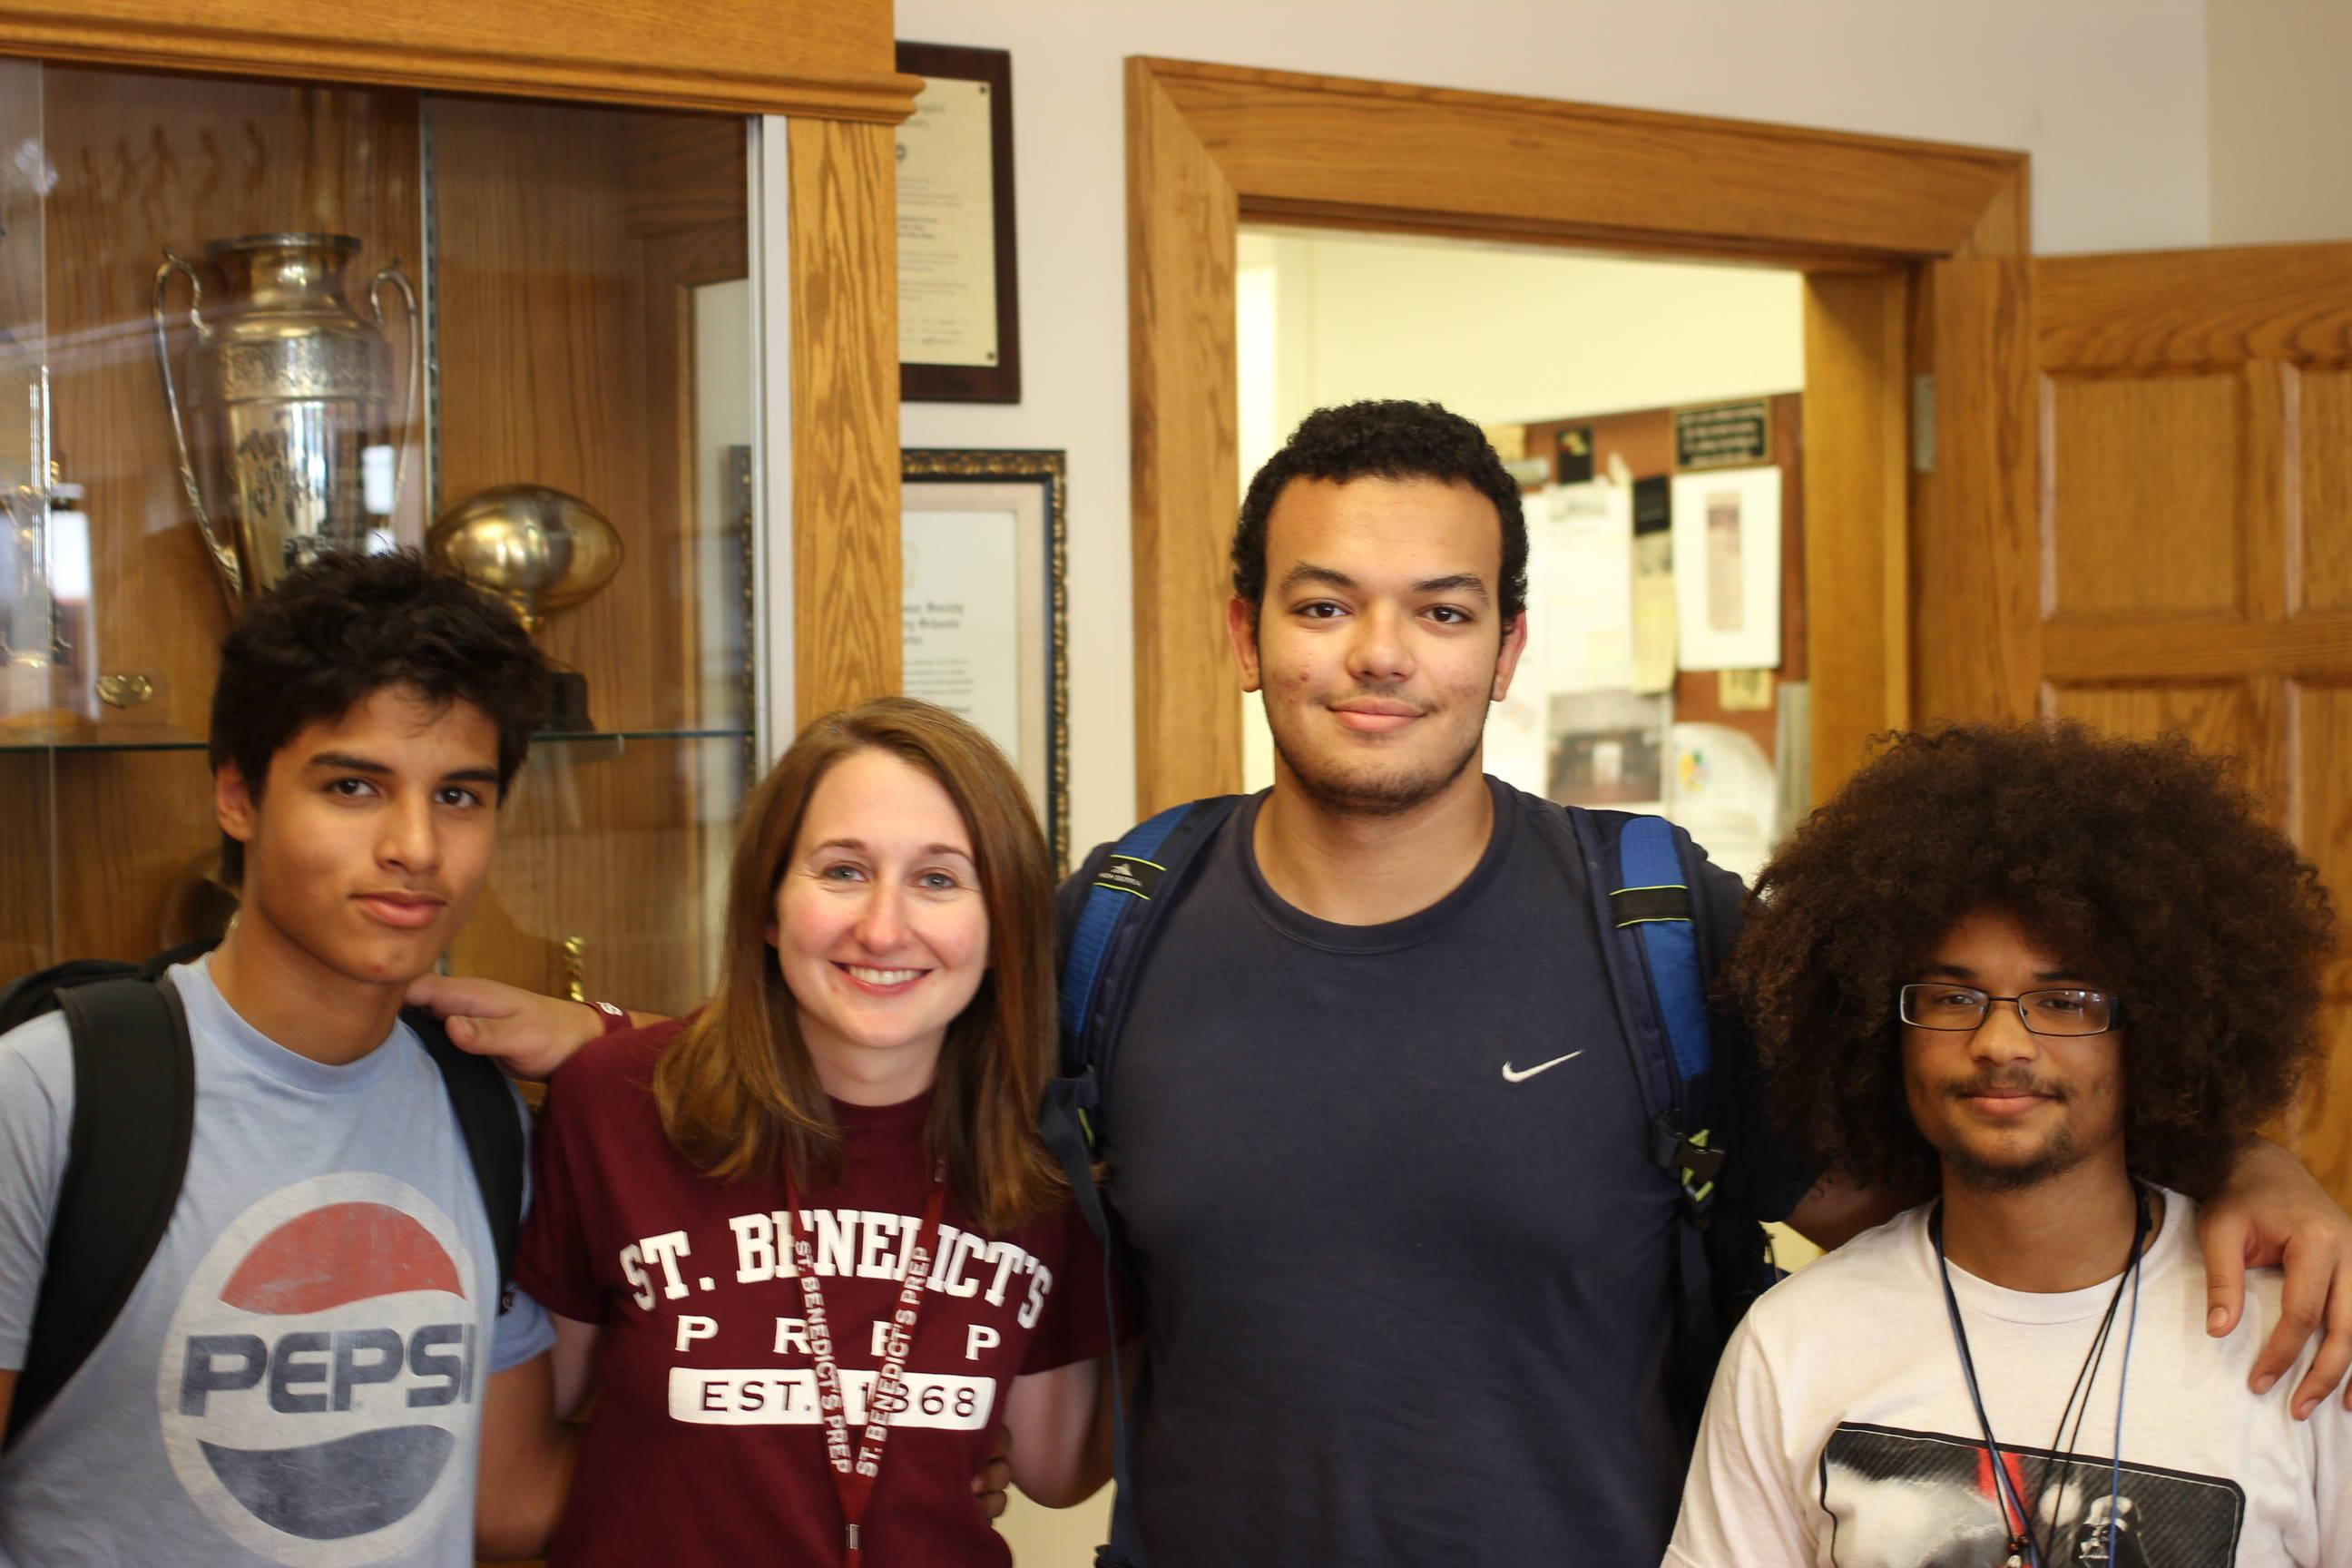 From left to right, Nomar Rodriguez, Erin Sweeney, Ahmed Hammad, and Dakota Gibbs say farewell in the Trophy Room.